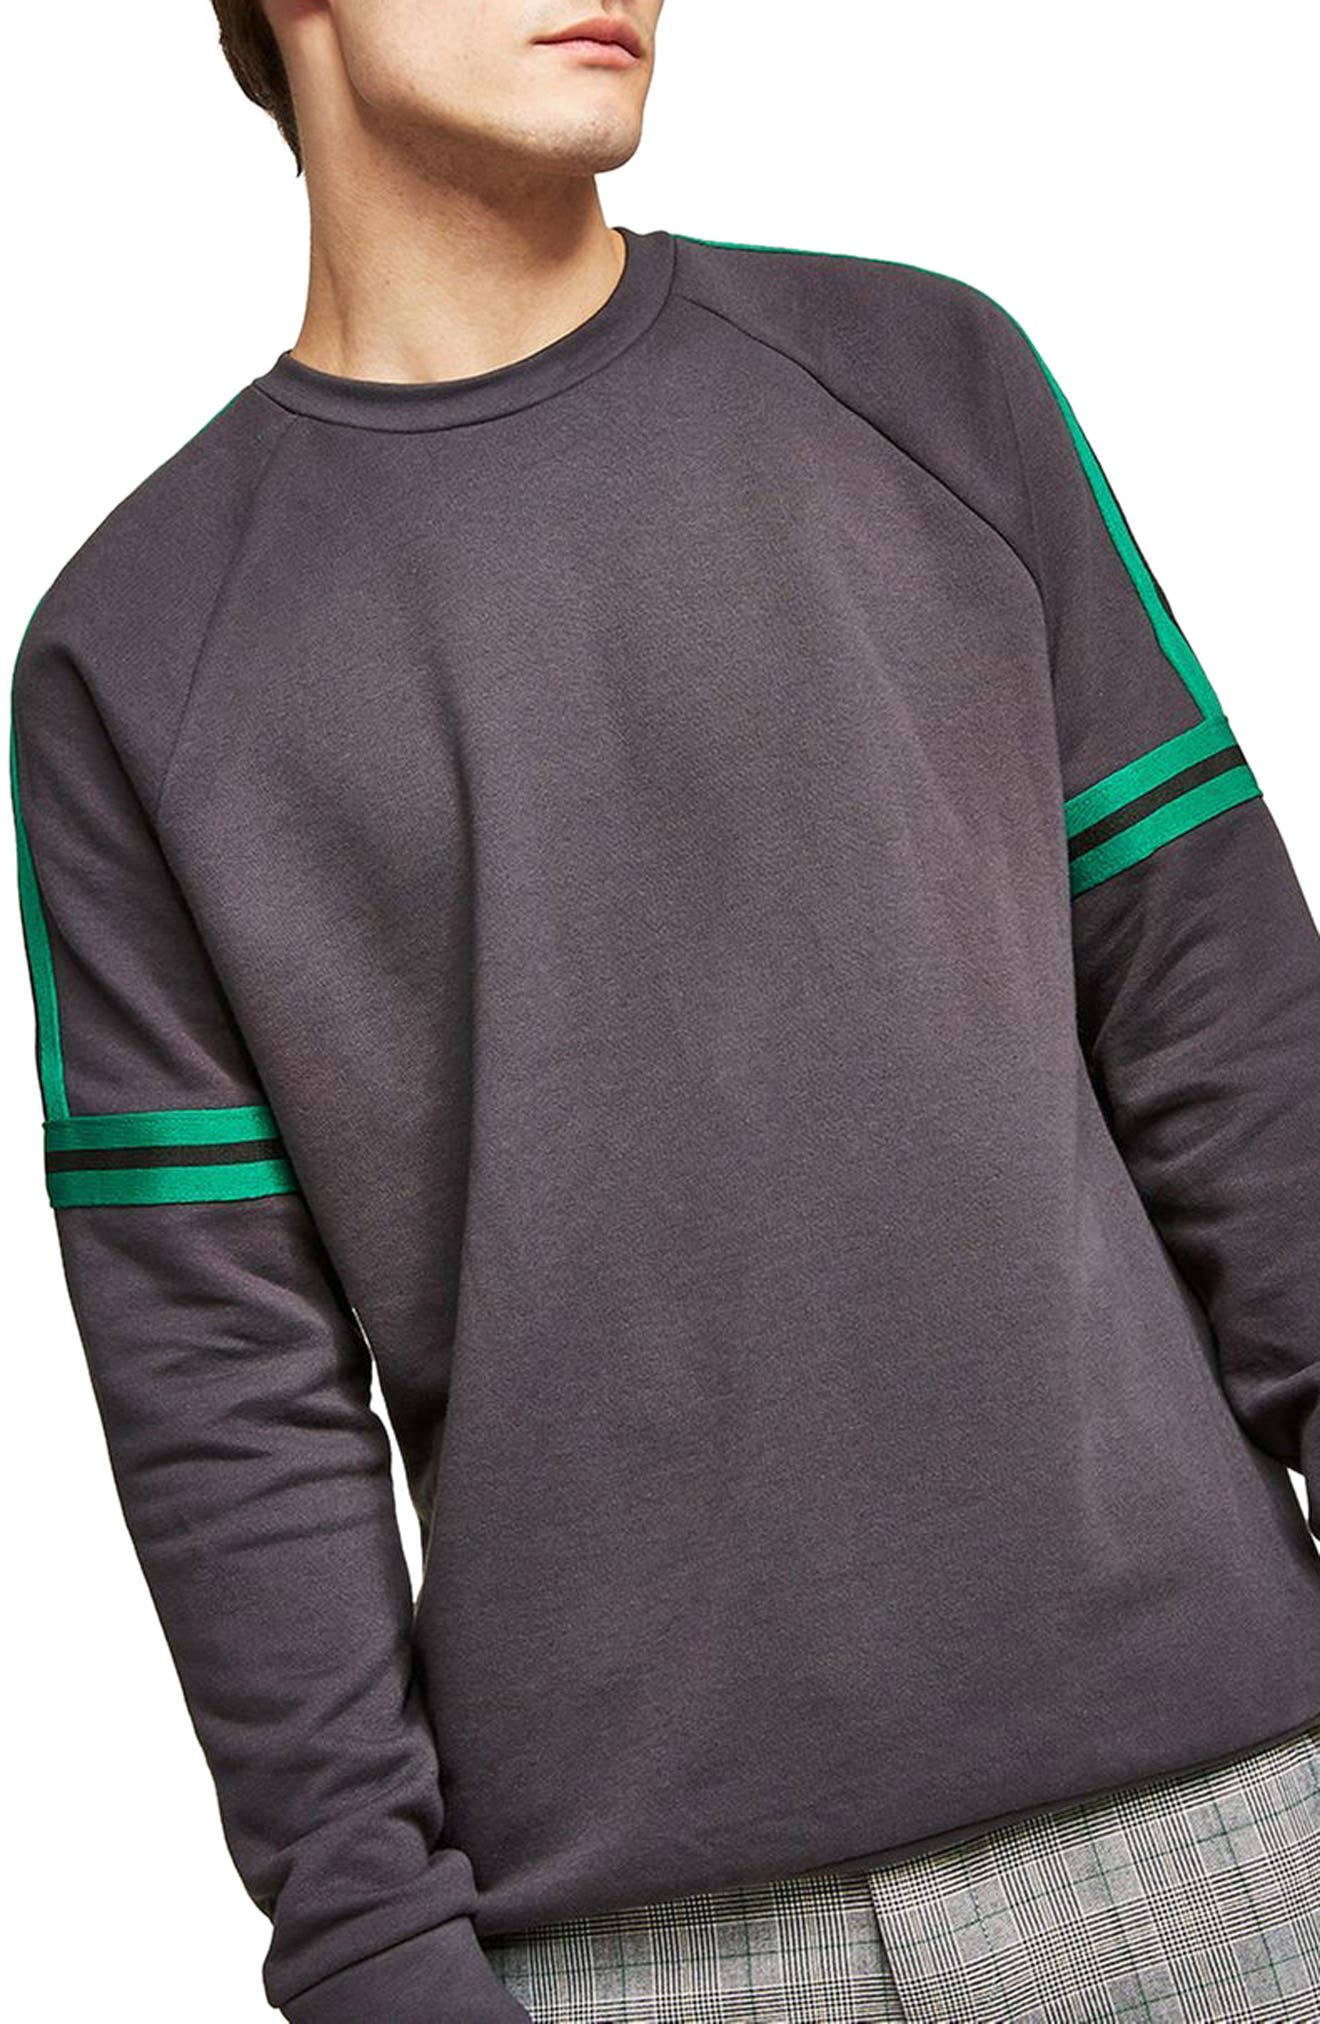 Tape Crewneck Sweatshirt,                             Main thumbnail 1, color,